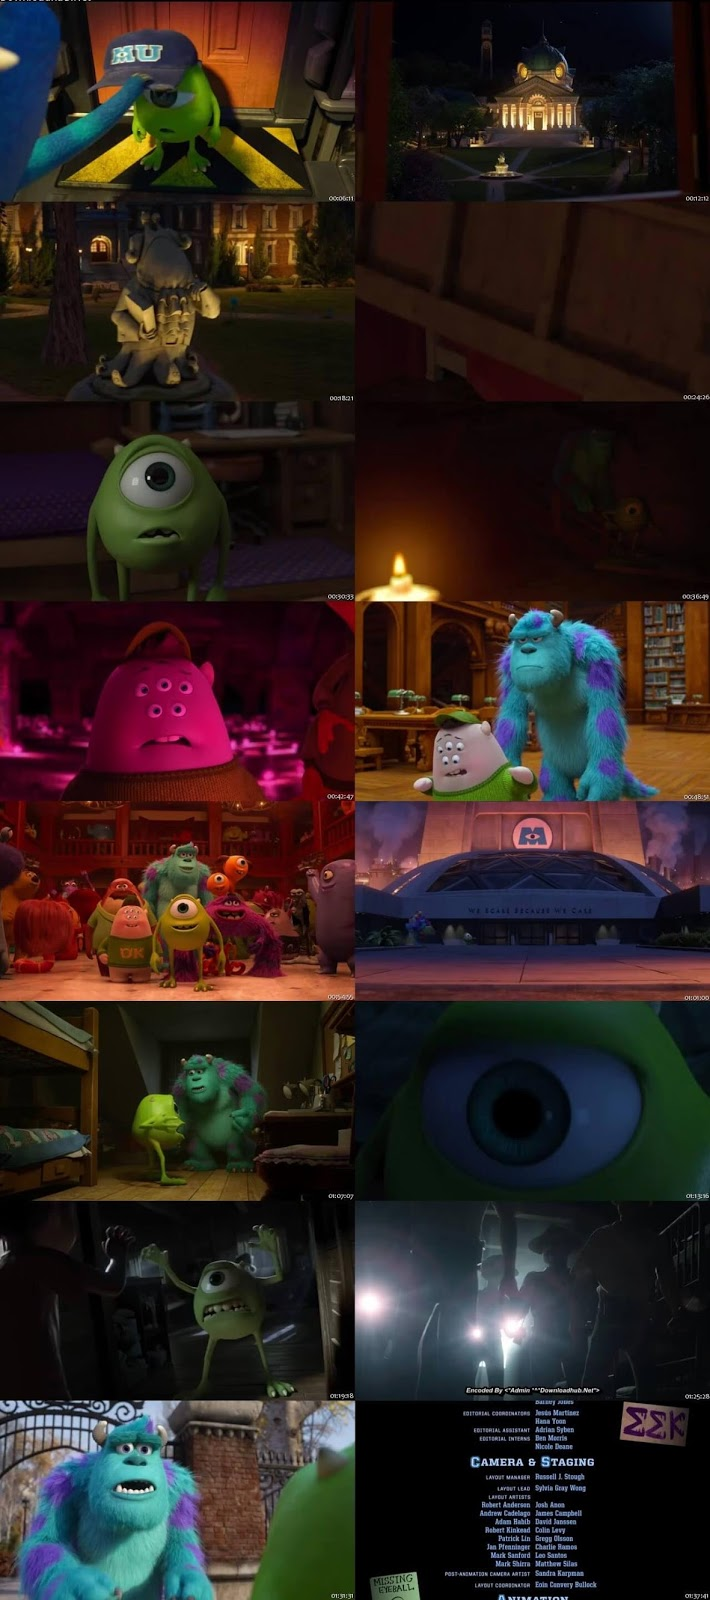 Monsters university 2013 full movie 300mb english brrip 480p movie hd monsters university 2013 full movie 300mb english brrip 480p voltagebd Image collections